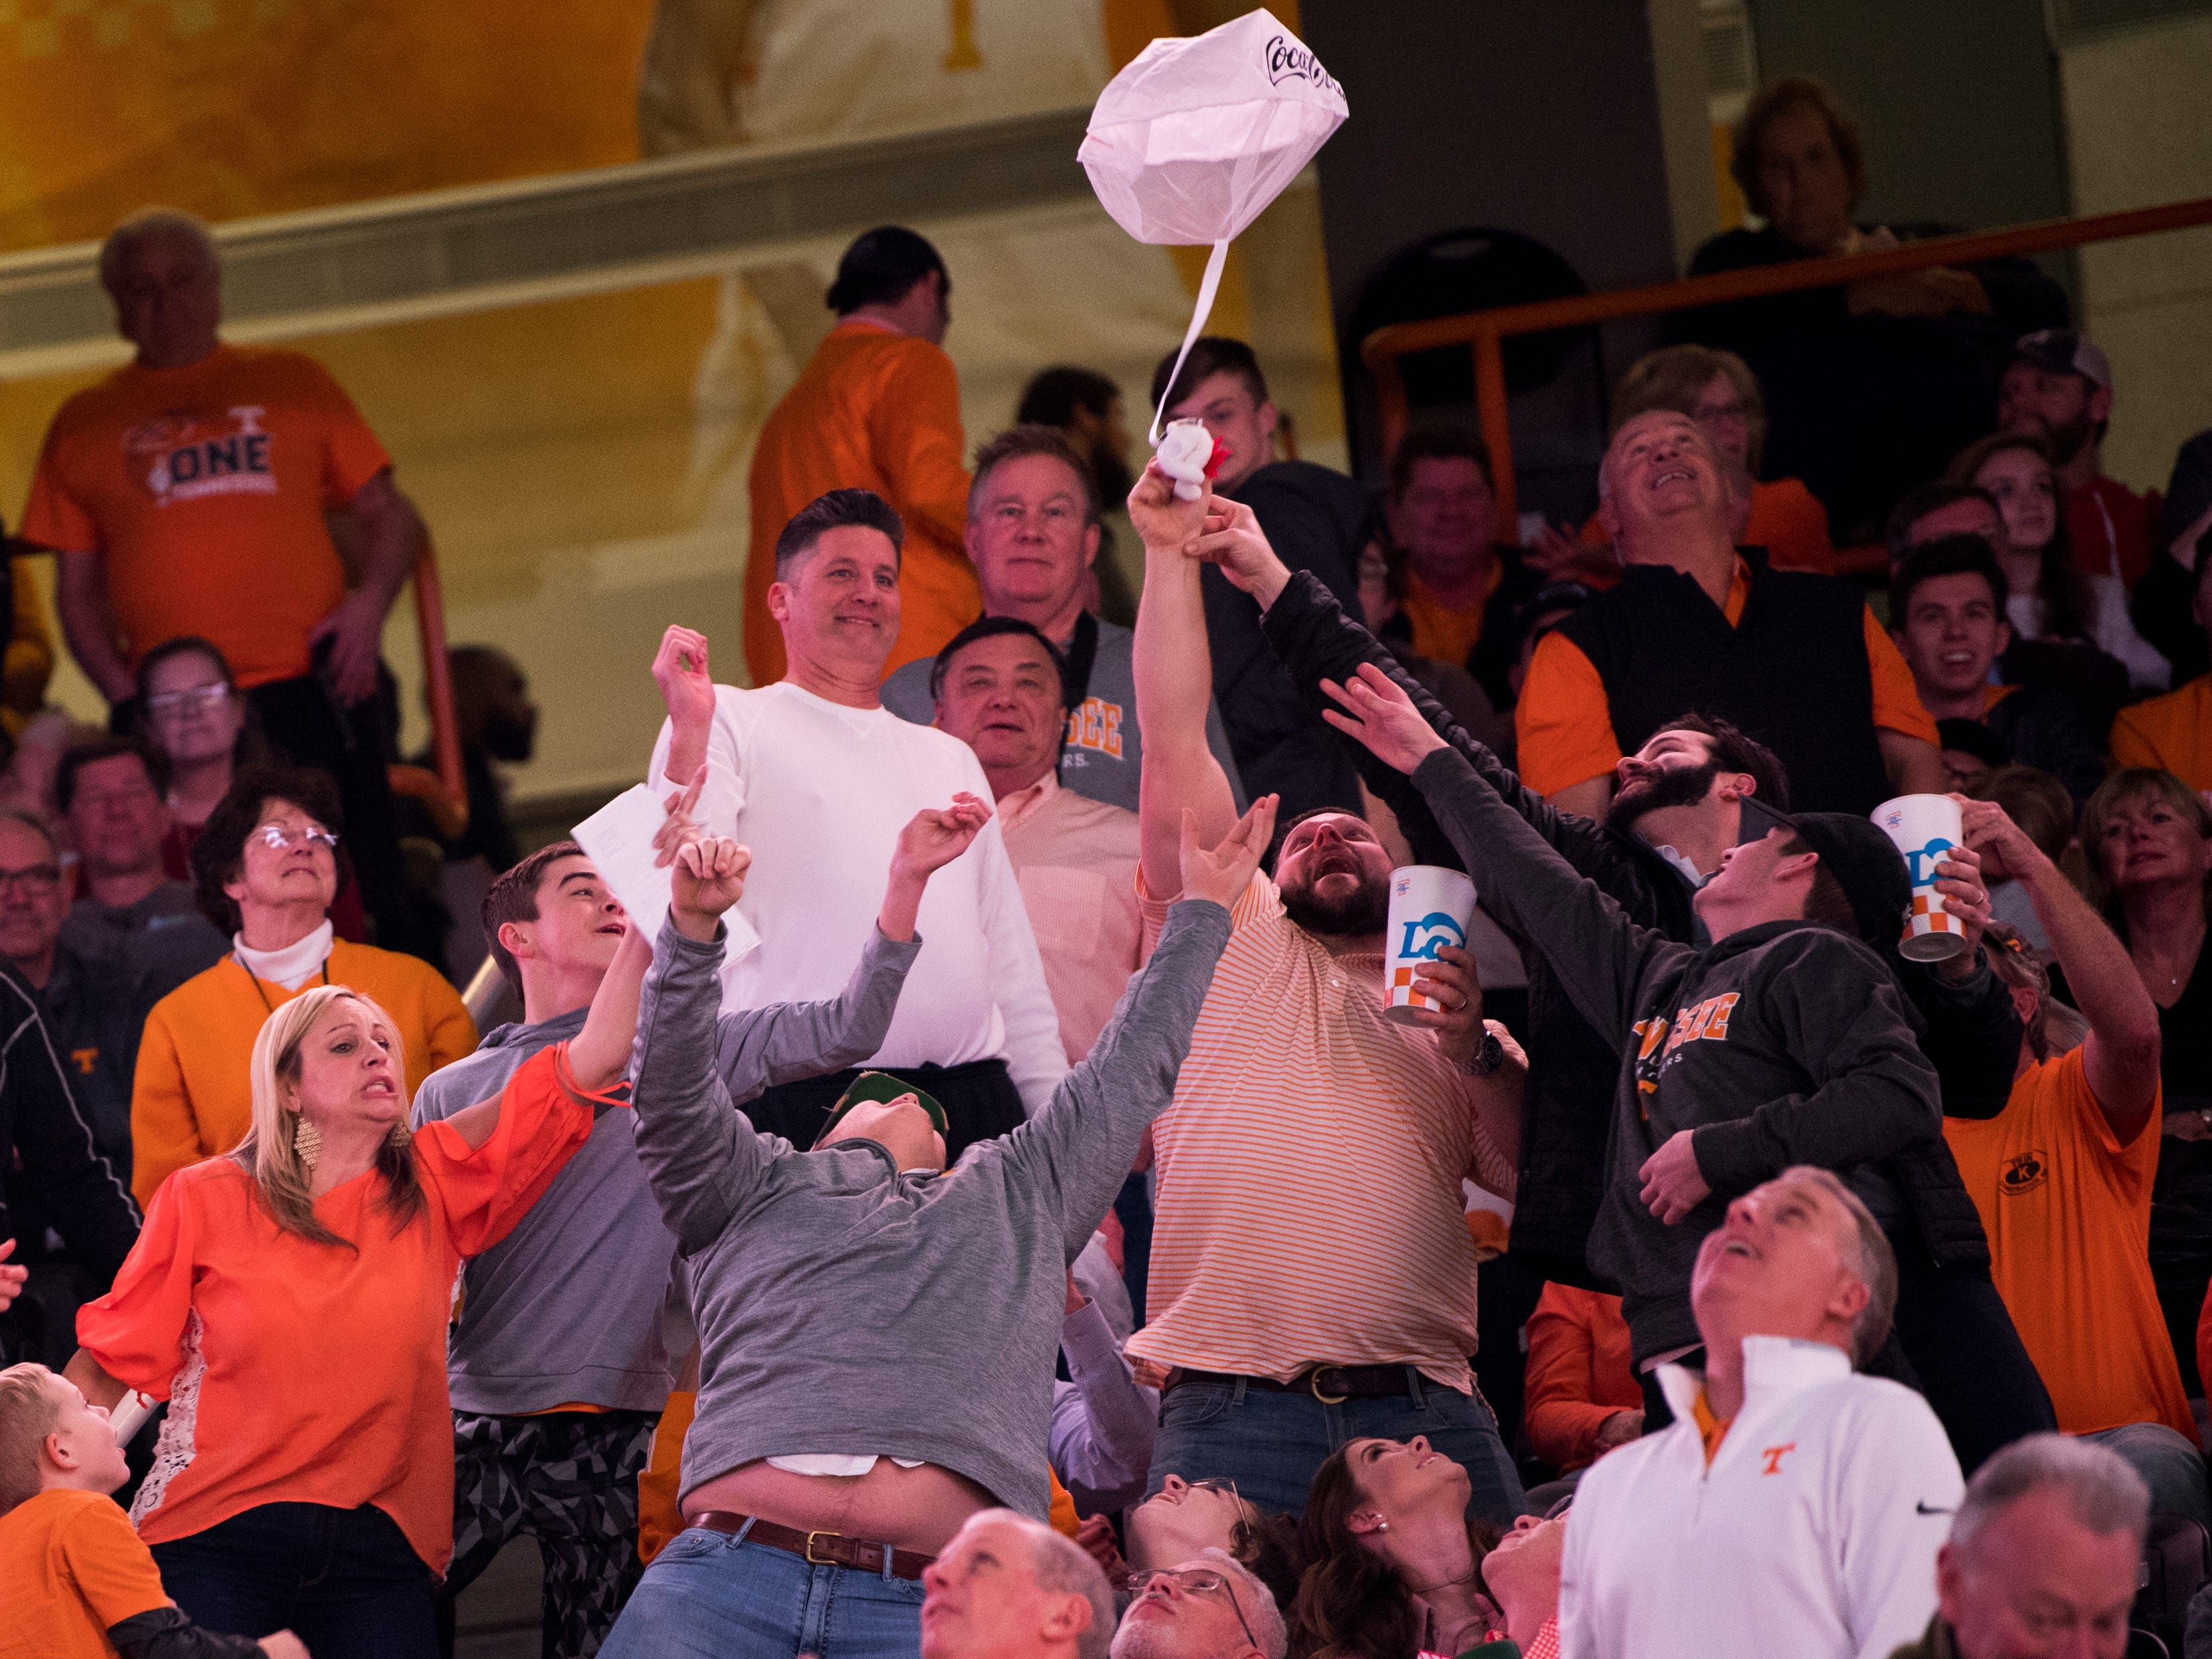 Fans reach for a parachuting plush bear during Tennessee's home SEC game against South Carolina at Thompson-Boling Arena in Knoxville on Wednesday, February 13, 2019.